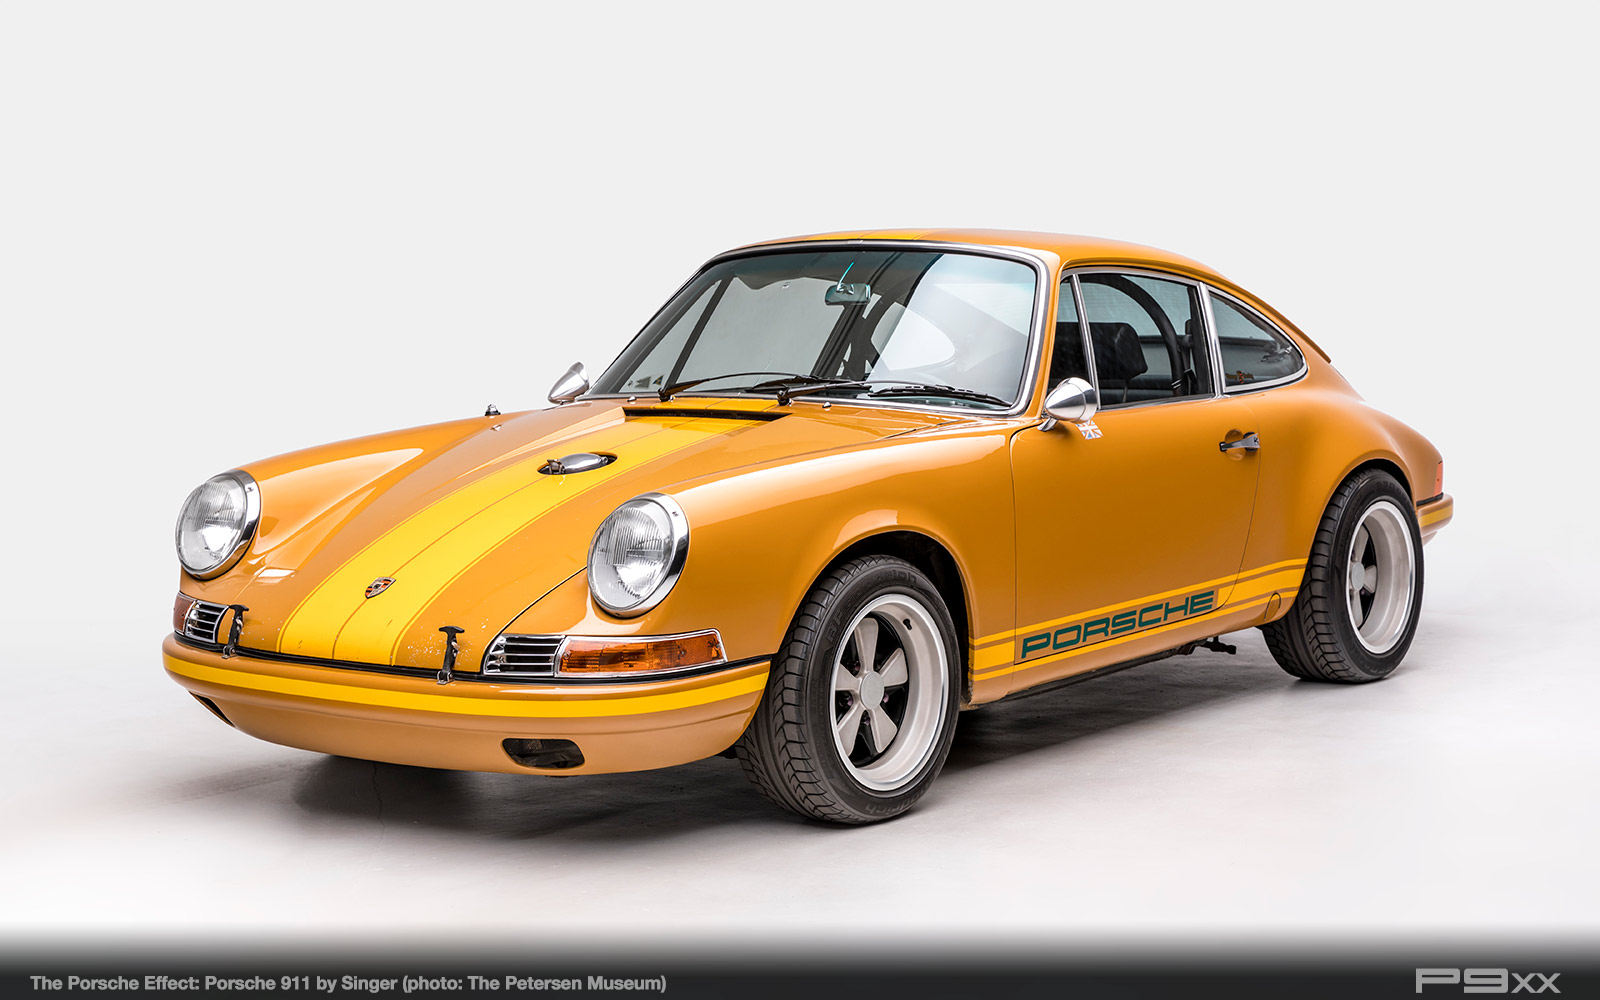 Singer-911-Petersen-Automotive-Museum-The-Porsche-Effect-289